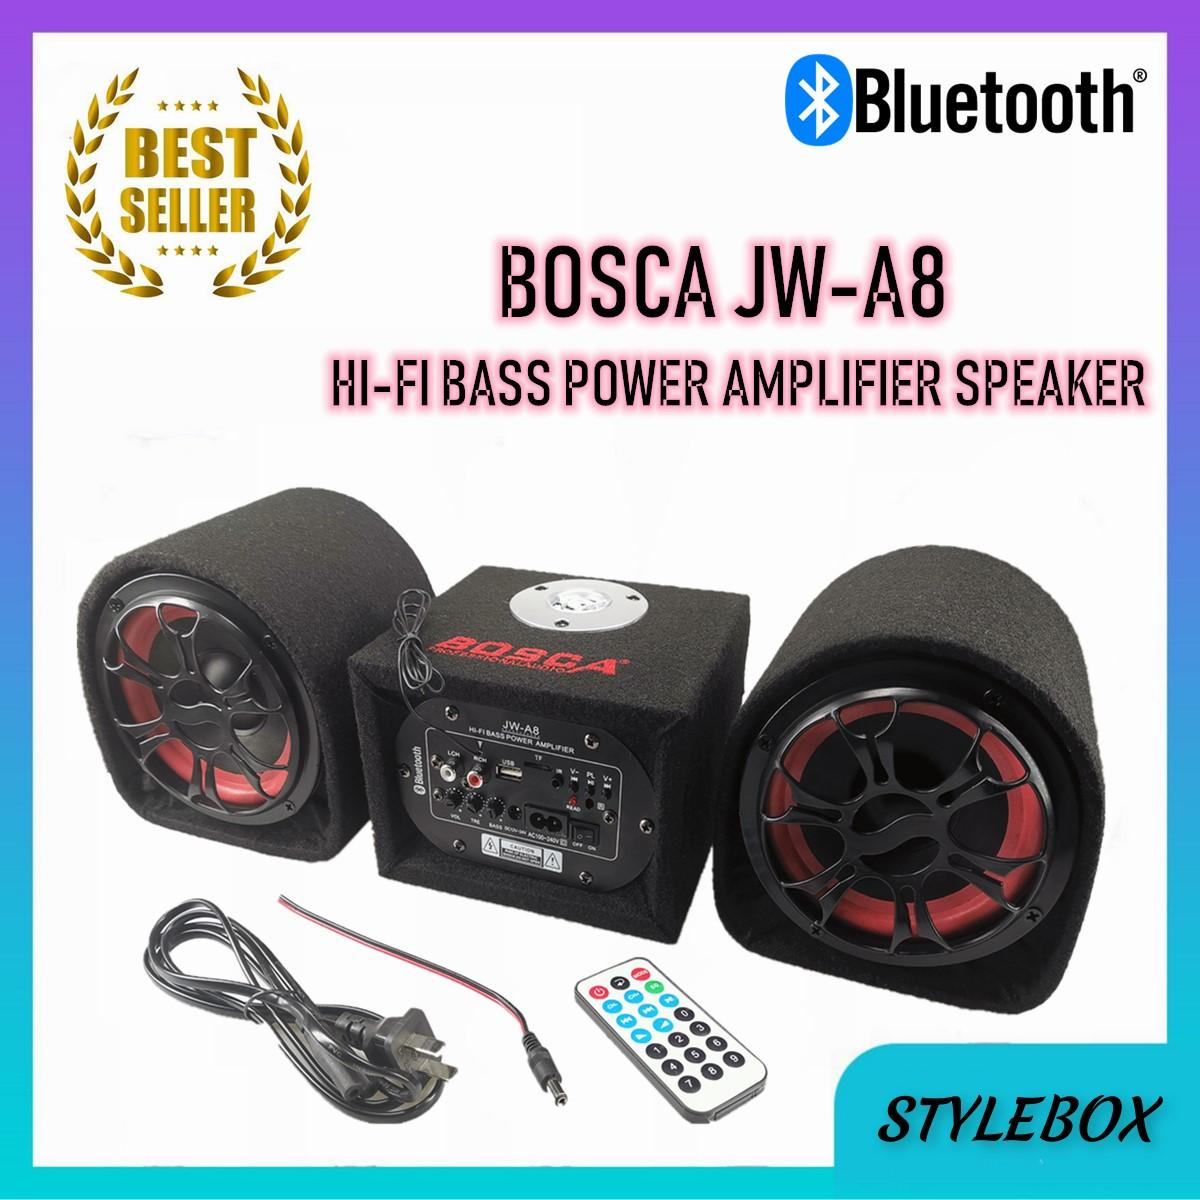 Bosca JW-A8 2 1 Bluetooth HI-FI Bass Power Amplifier speaker with remote  control with USB port TF port Great for Automotive,Smart phones,Music,